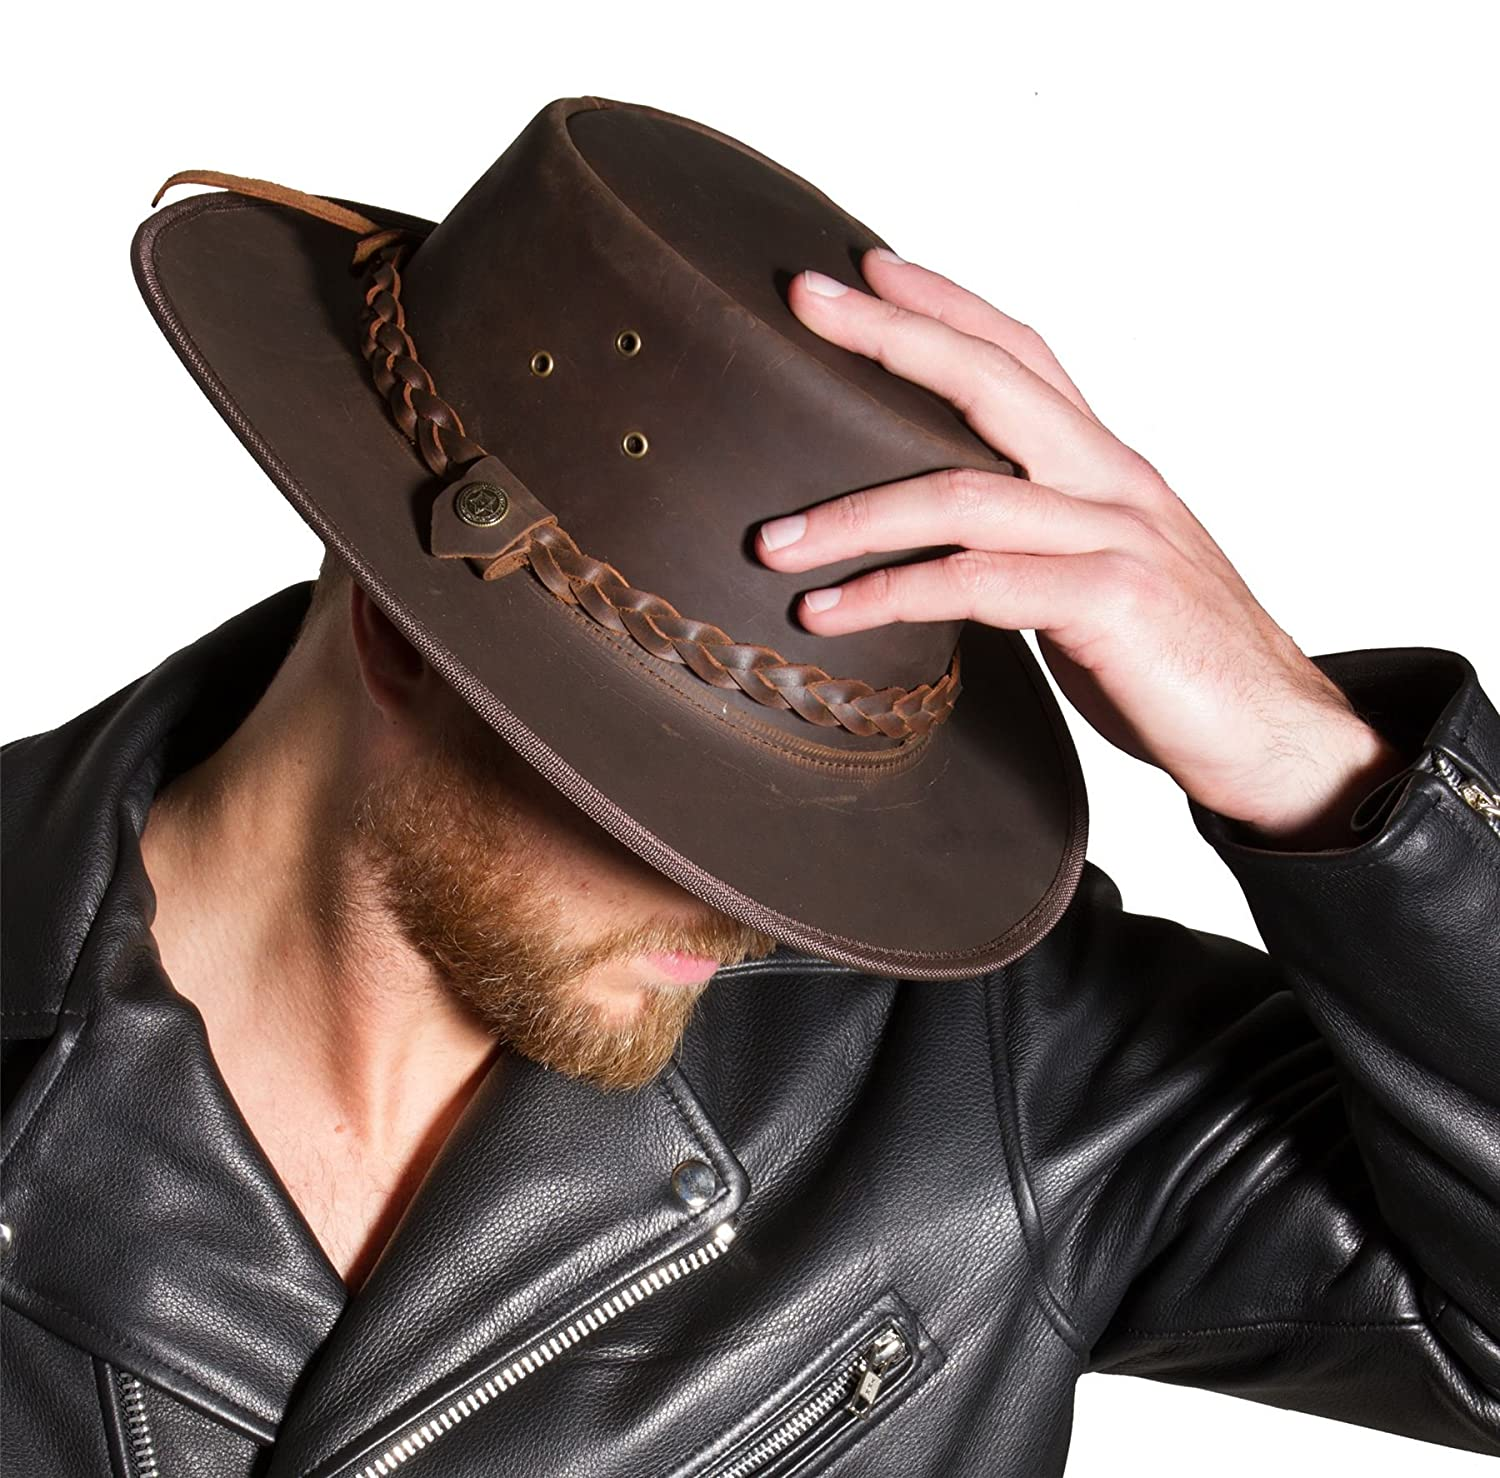 4487b8bbbce51 Genuine Full Leather Distressed Look Cowboy Hat for Men and Women   Amazon.co.uk  Clothing